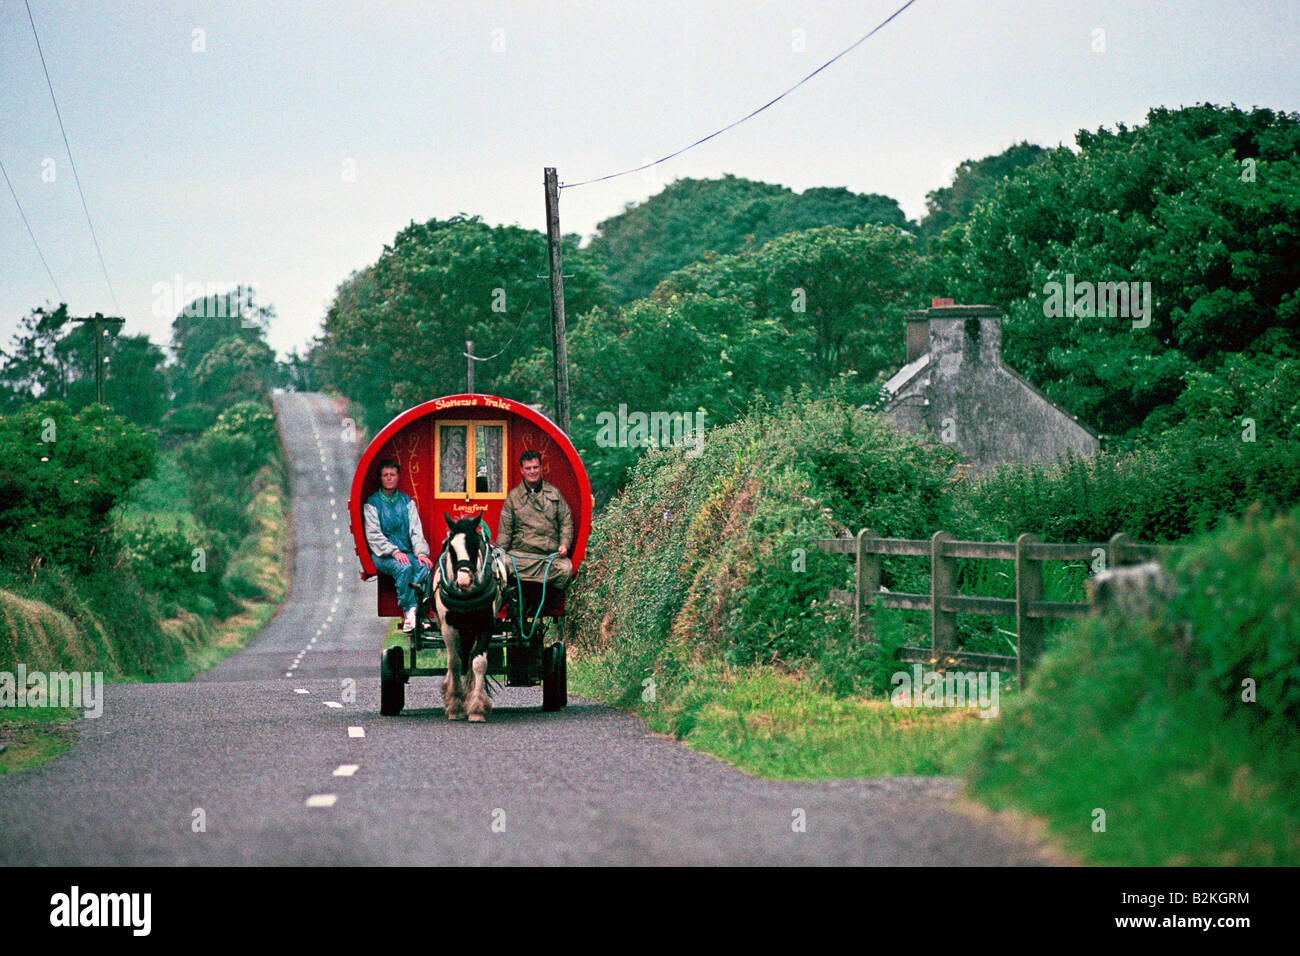 SOUTHERN IRELAND CO KERRY DINGLE PENINSULA INCH CARAVAN ON COUNTRY ROAD 1991 - Stock Image